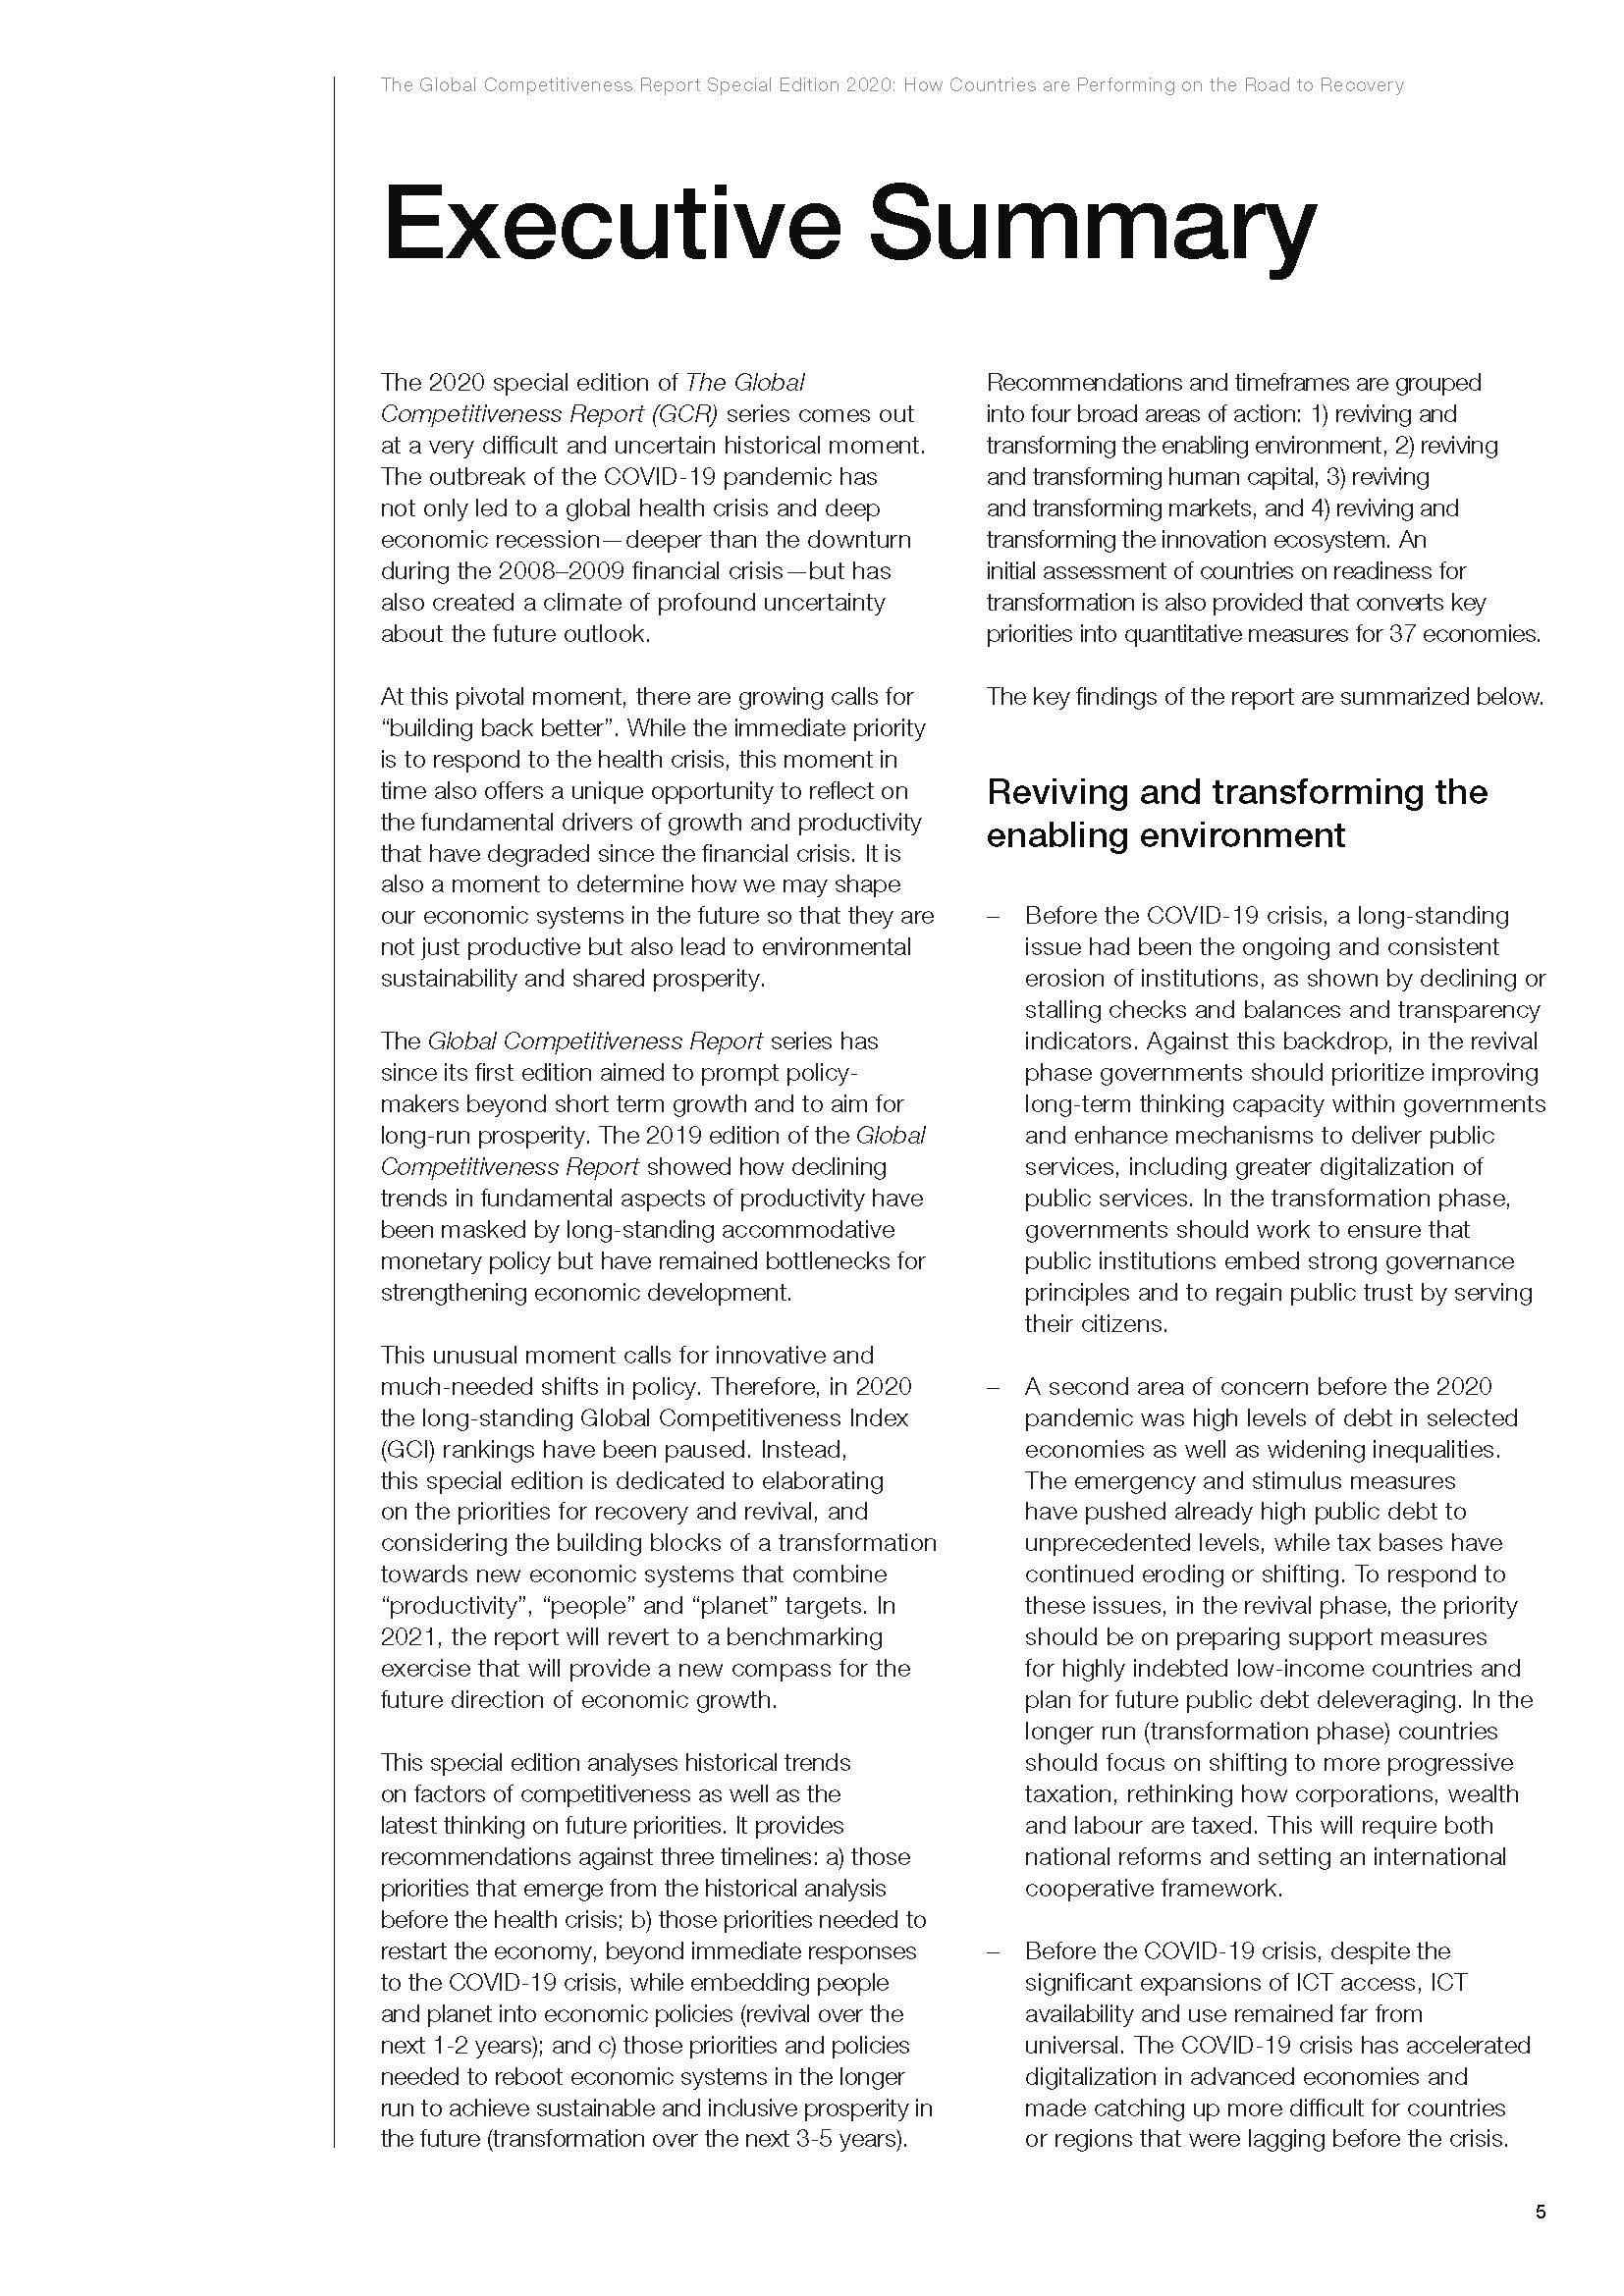 Global Competitiveness Report Special Edition 2020:How Countries are Performing on the Road to Recovery - World Economic Forum_页面_05.jpg